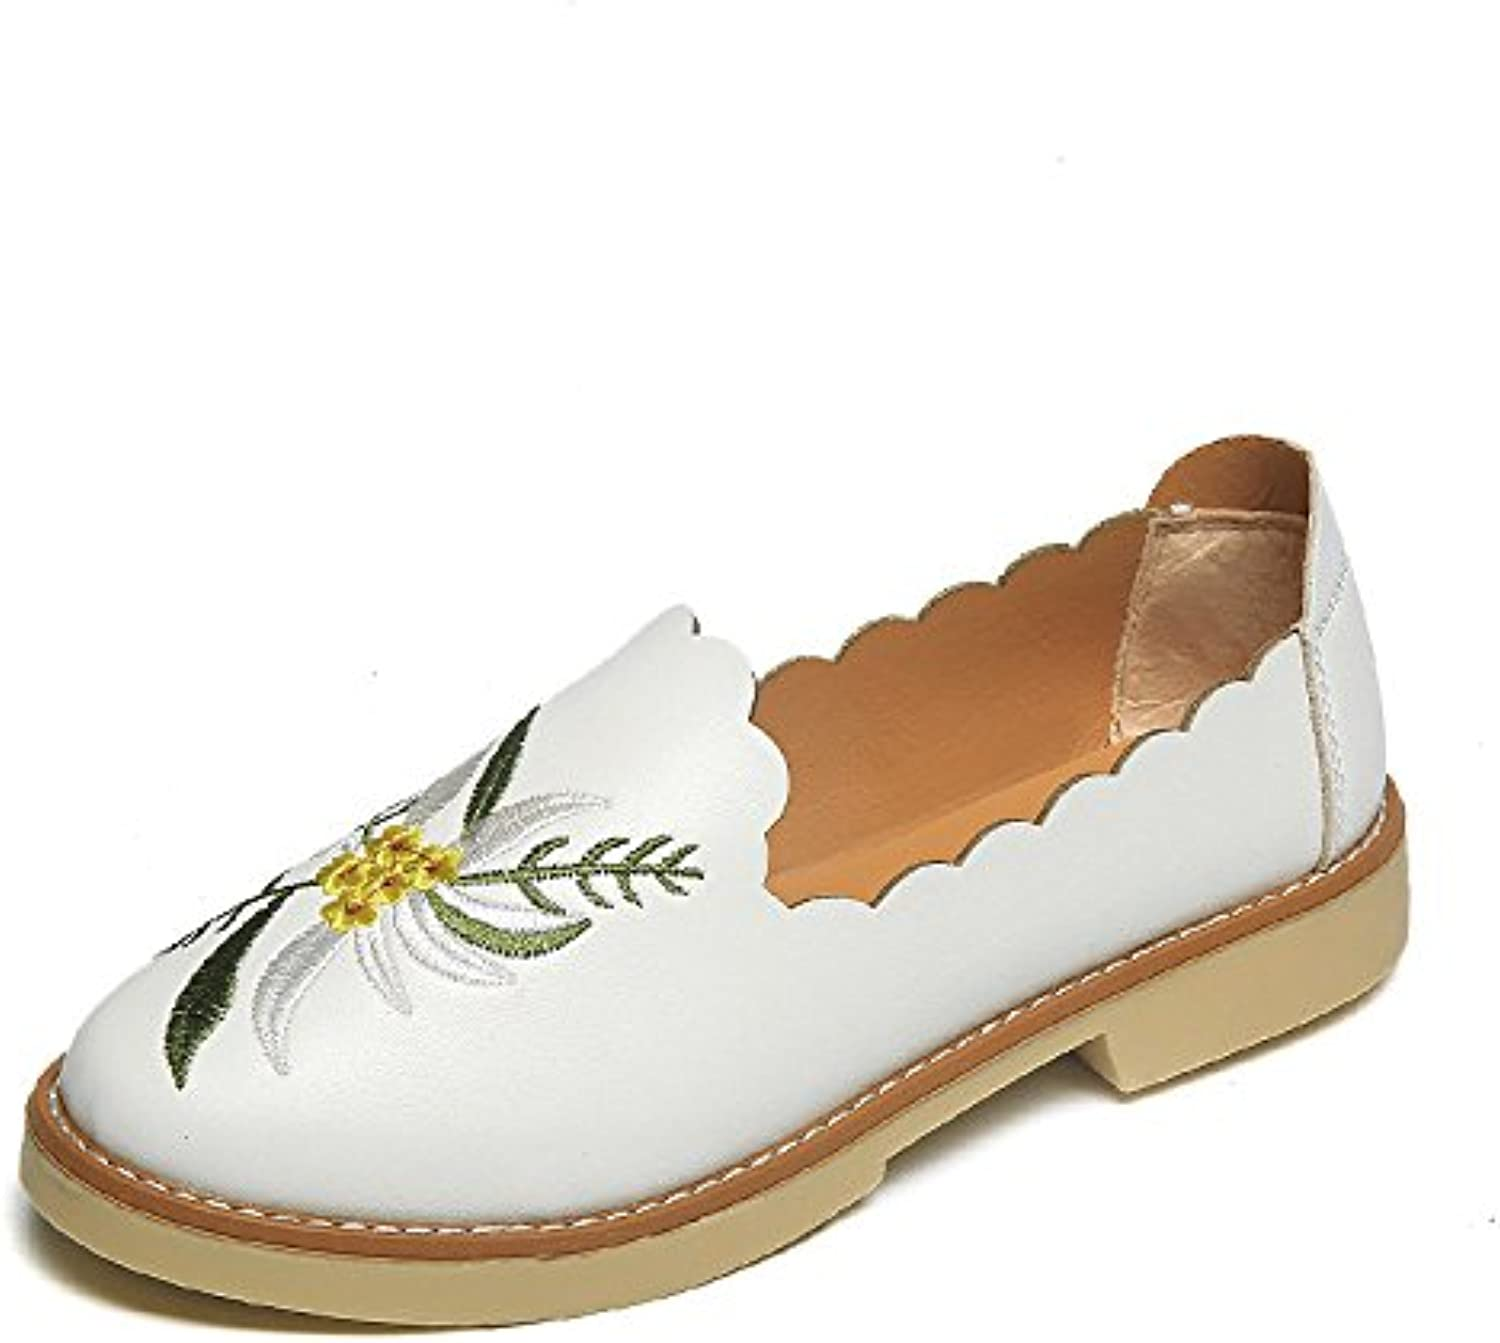 WYMBS Autumn and Winter Gifts Women's shoes Women's Casual Embroidery with Single Xieping